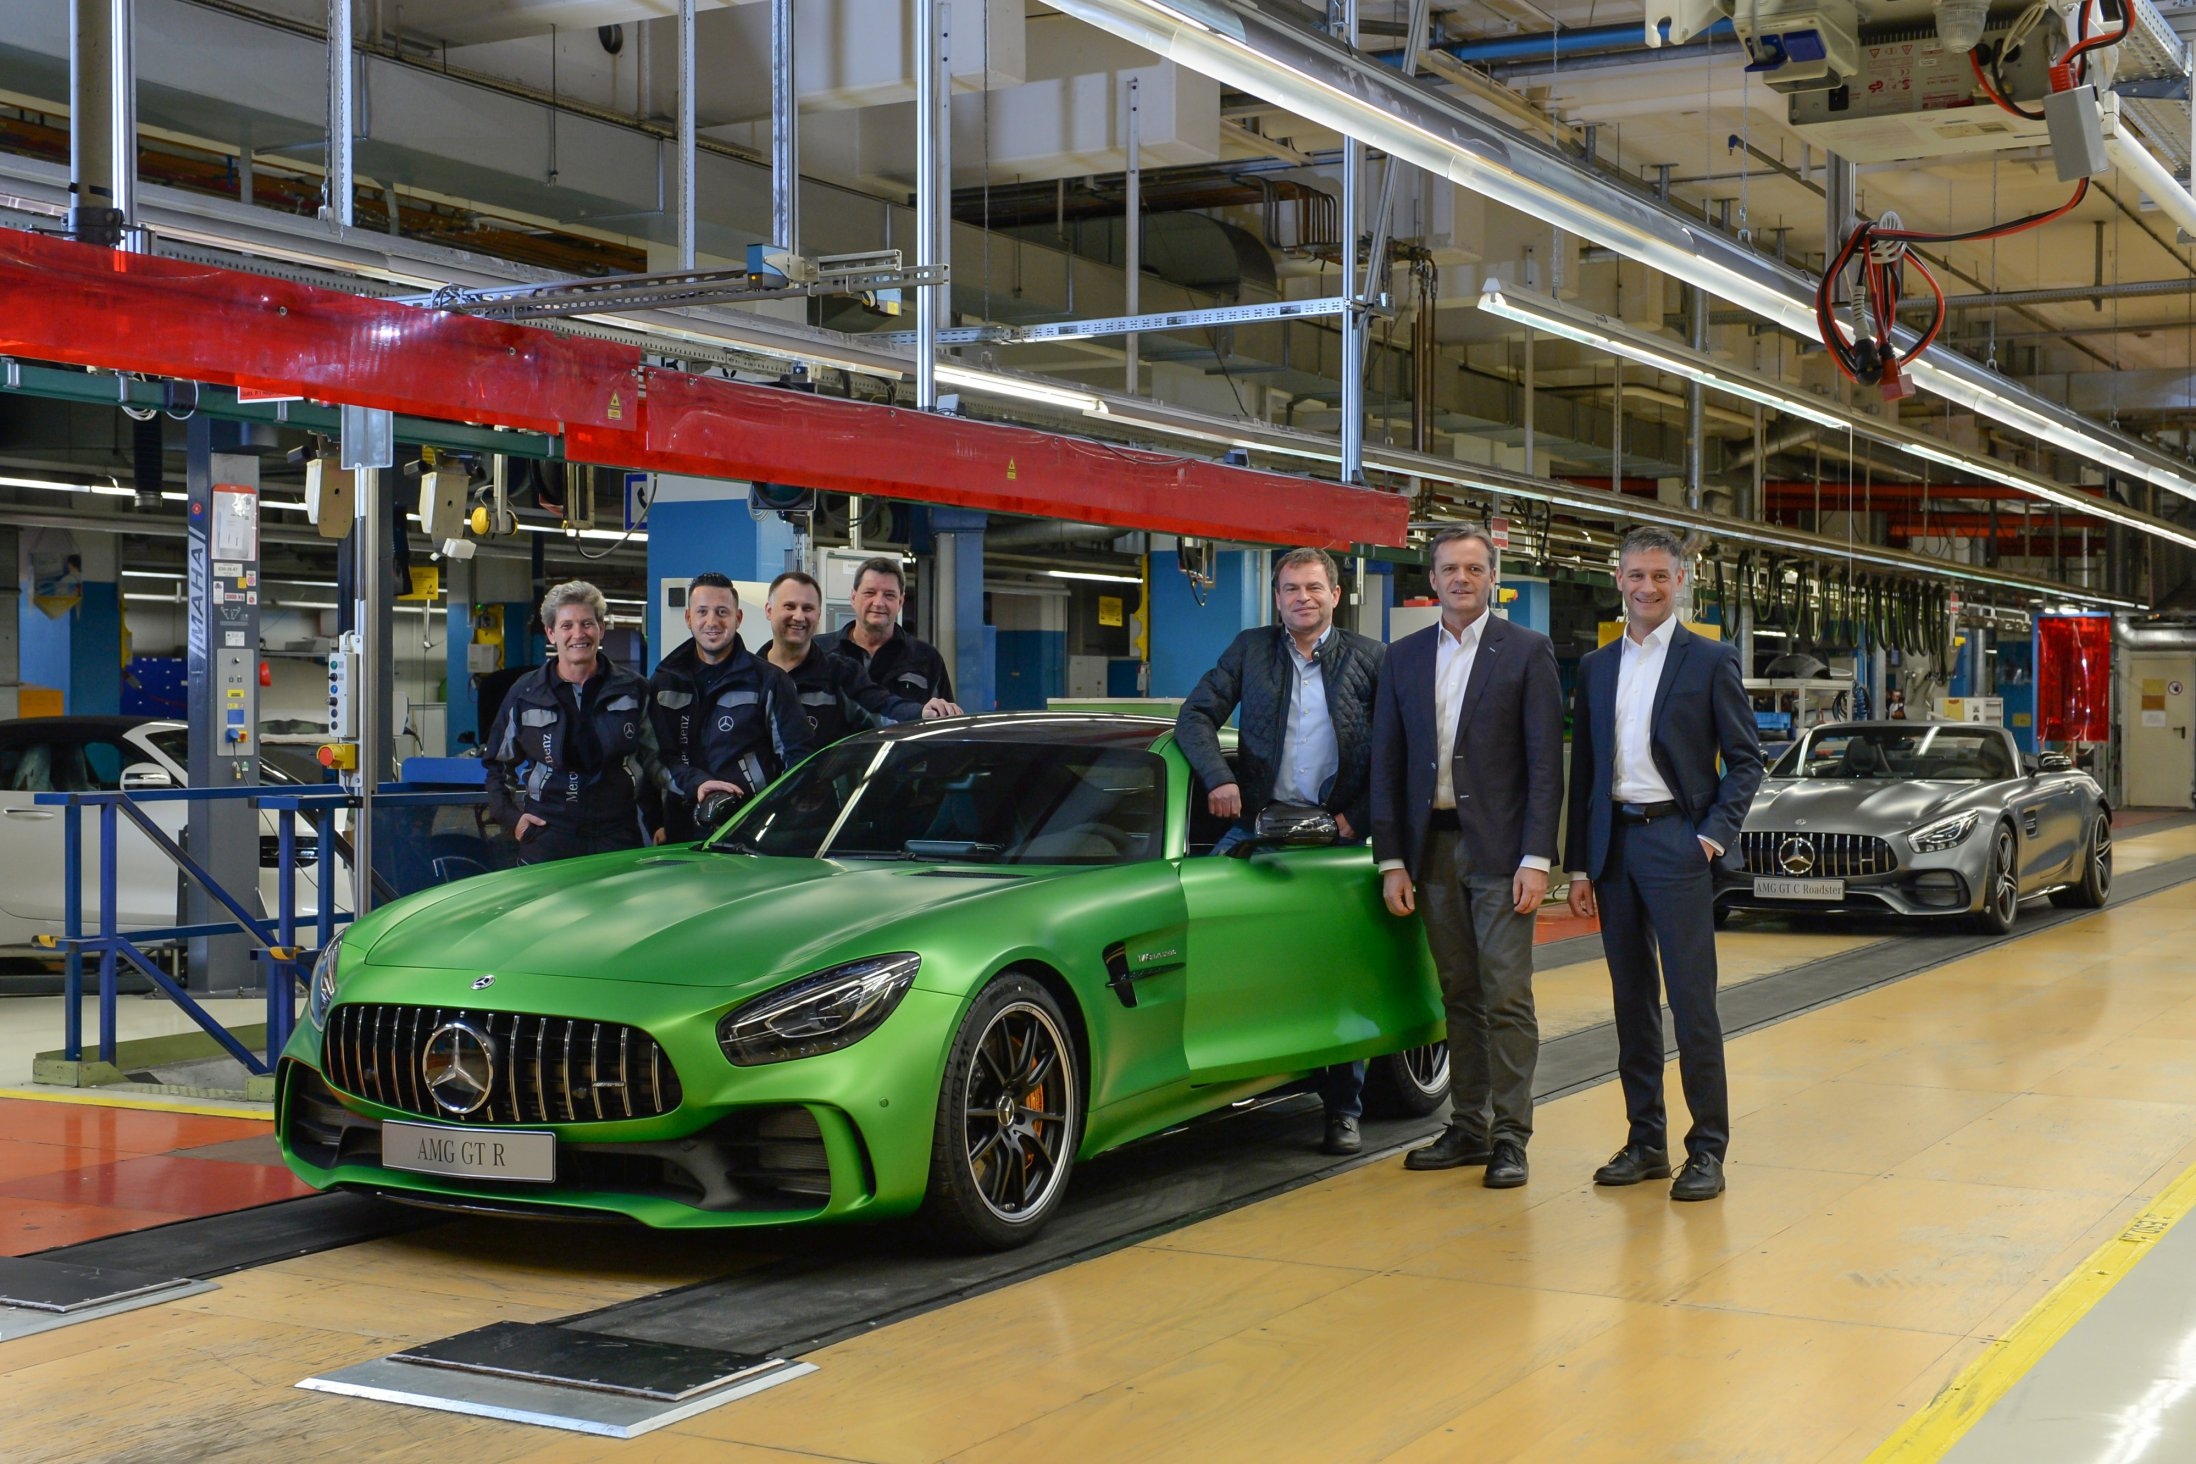 Produktionsstart im Mercedes-Benz Werk Sindelfingen: Markus Schäfer (2.v.r., Mitglied des Bereichsvorstands Mercedes-Benz Cars, Produktion und Supply Chain Management), Tobias Moers, (3.v.r., Vorsitzender der Geschäftsführung der Mercedes-AMG GmbH) und Michael Bauer (r., Standortverantwortlicher und Produktionsleiter Mercedes-Benz Werk Sindelfingen) mit der Mannschaft beim Anlauf des Mercedes-AMG GT R und des Mercedes-AMG GT C Roadsters. ;Mercedes-AMG GT R / Mercedes-AMG GT C Roadster: Kraftstoffverbrauch kombiniert: 11,4 l/100km; CO2-Emissionen kombiniert: 259 g/km Start of production at the Mercedes-Benz Sindelfingen plant: Markus Schaefer (2nd from right, Member of the Divisional Board of Mercedes-Benz Cars, Production and Supply Chain Management), Tobias Moers (3rd from right, CEO of Mercedes-AMG GmbH) and Michael Bauer (right, Plant Manager of the Mercedes-Benz Sindelfingen plant) with the team during the ramp-up of the Mercedes-AMG GT R and the Mercedes-AMG GT C Roadster.; Mercedes-AMG GT R / Mercedes-AMG GT C Roadster: fuel consumption combined: 11,4 l /100km; combined CO2 emissions: 259 g/km